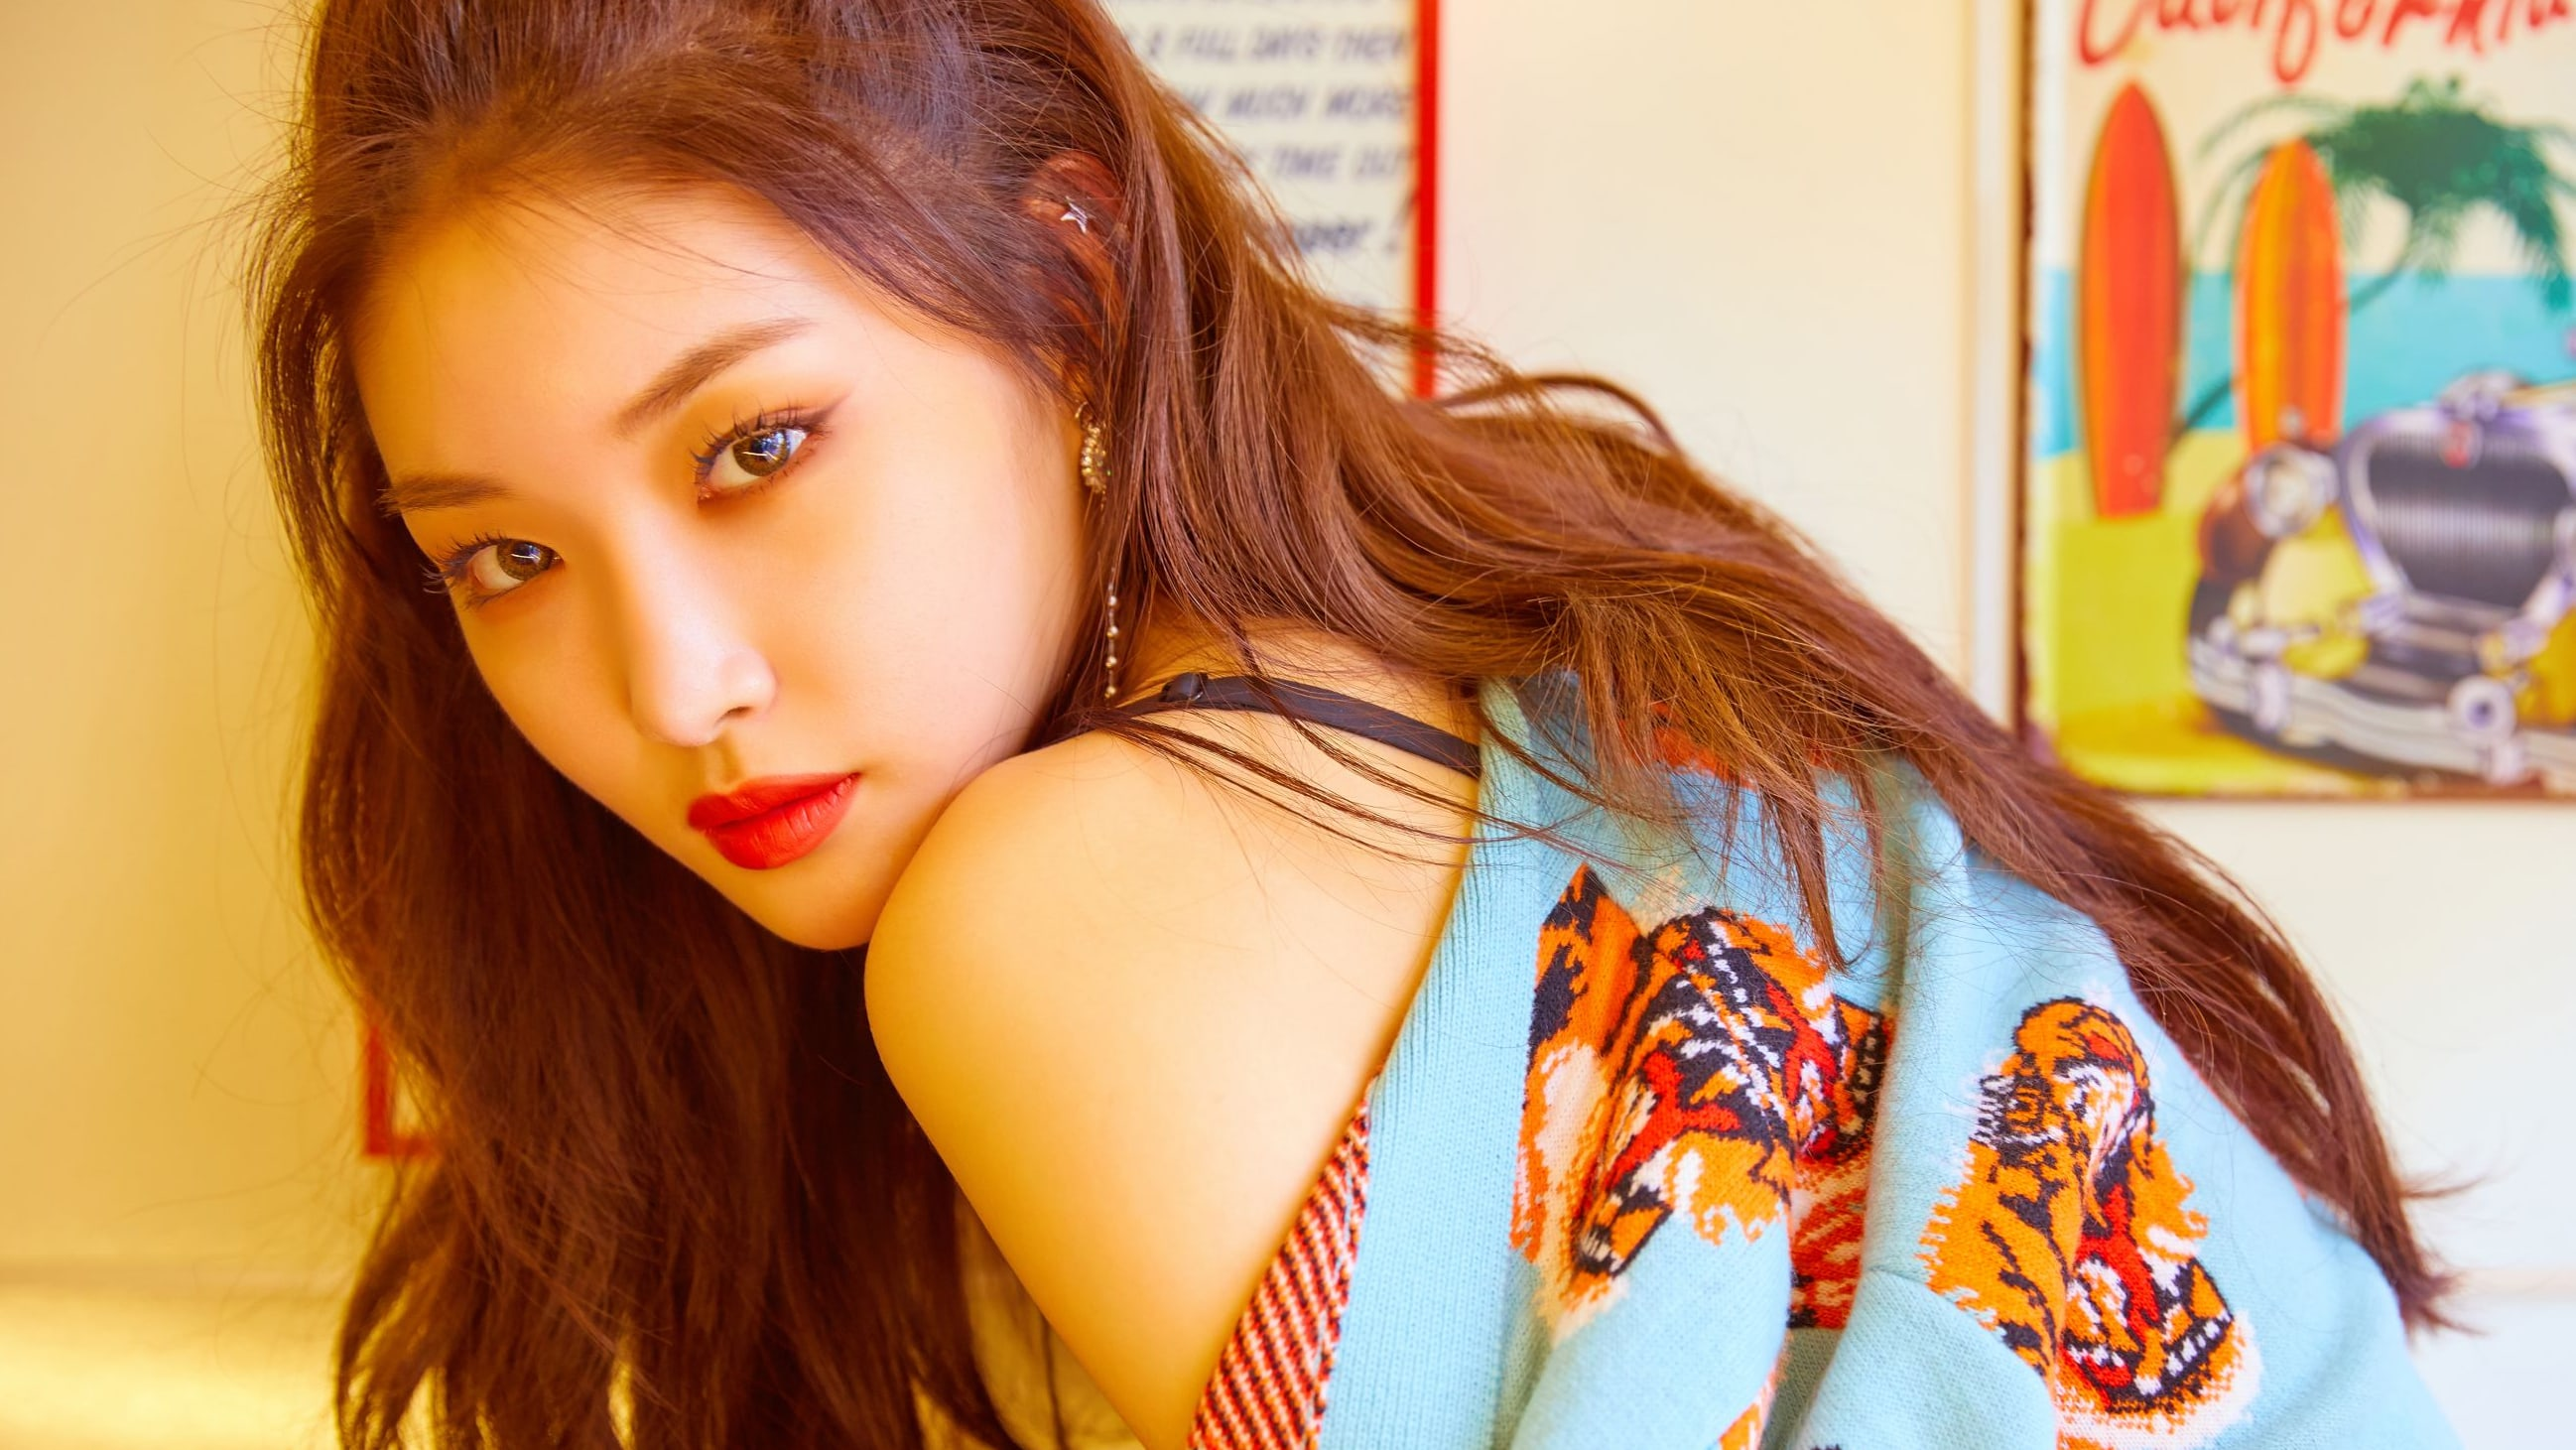 Chungha Reveals Shes Never Had An Official Boyfriend